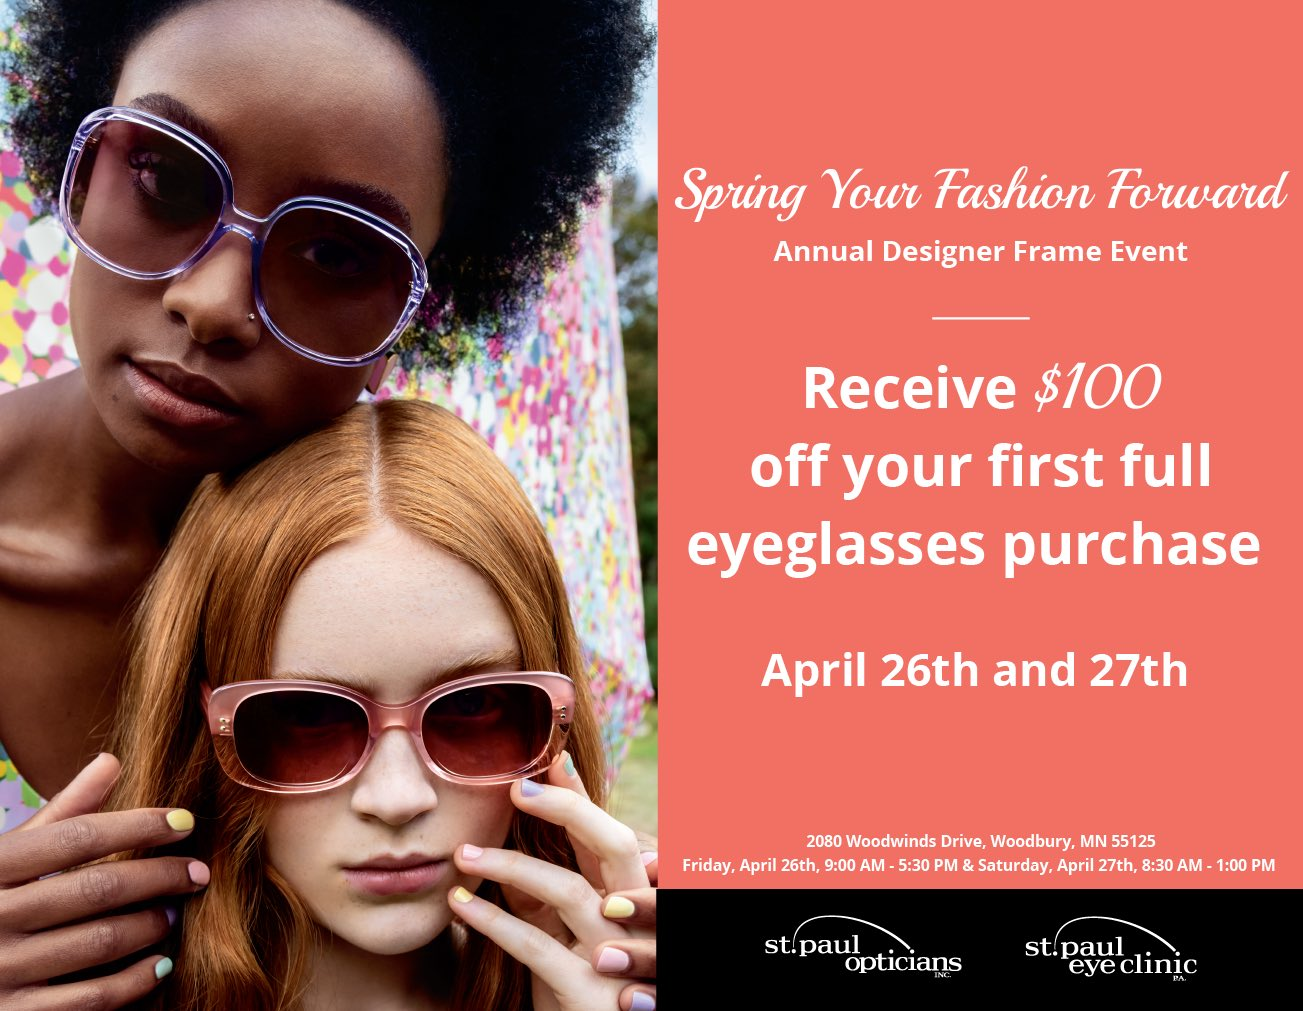 Receive $100 off your first full eyeglasses purchase. April 26 and 27.